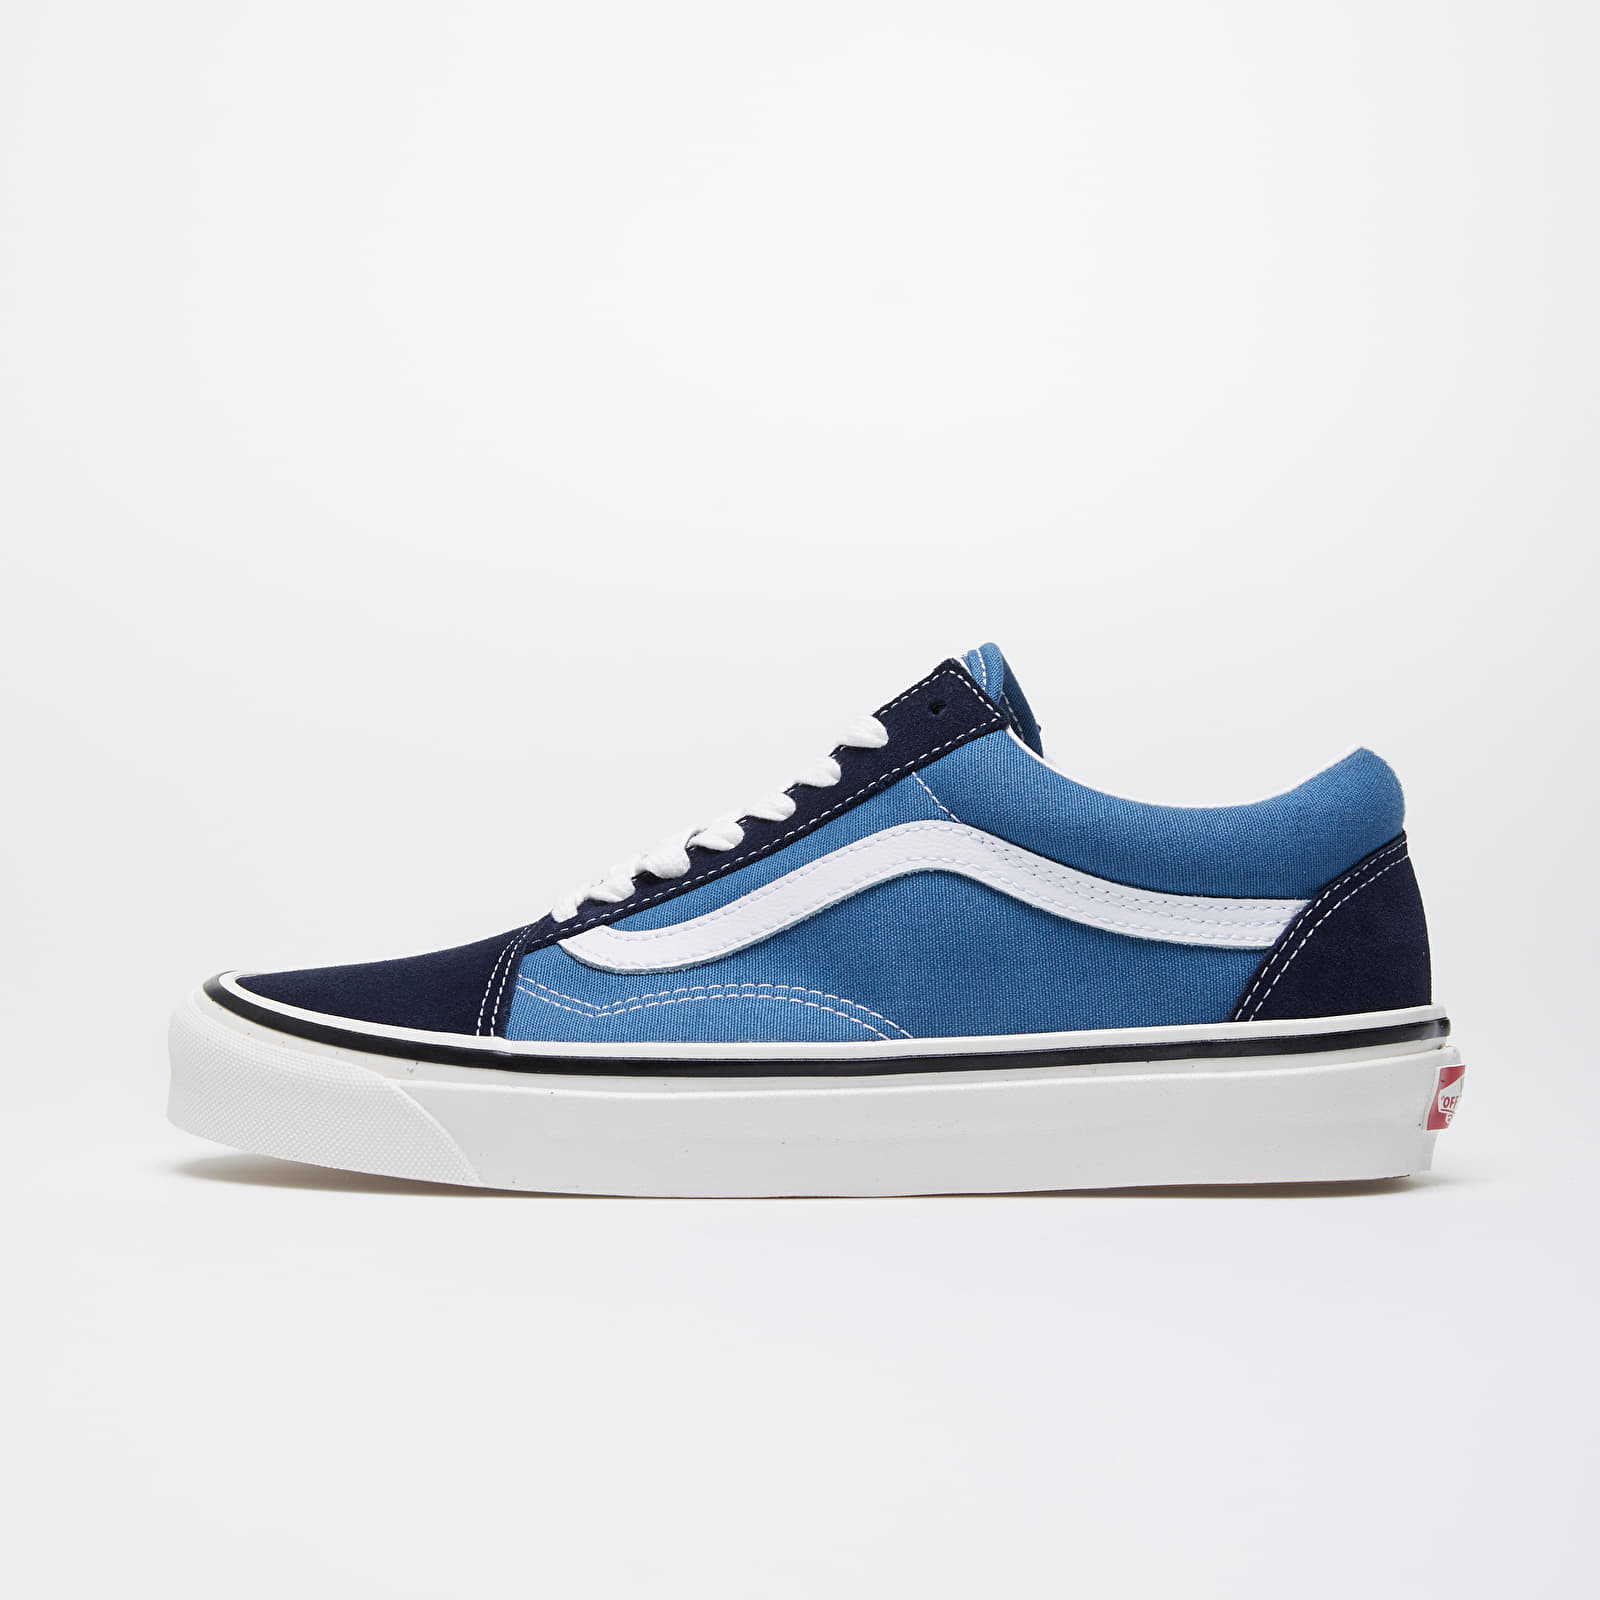 Chaussures et baskets homme Vans Old Skool 36 Dx Dark Blues/ Og